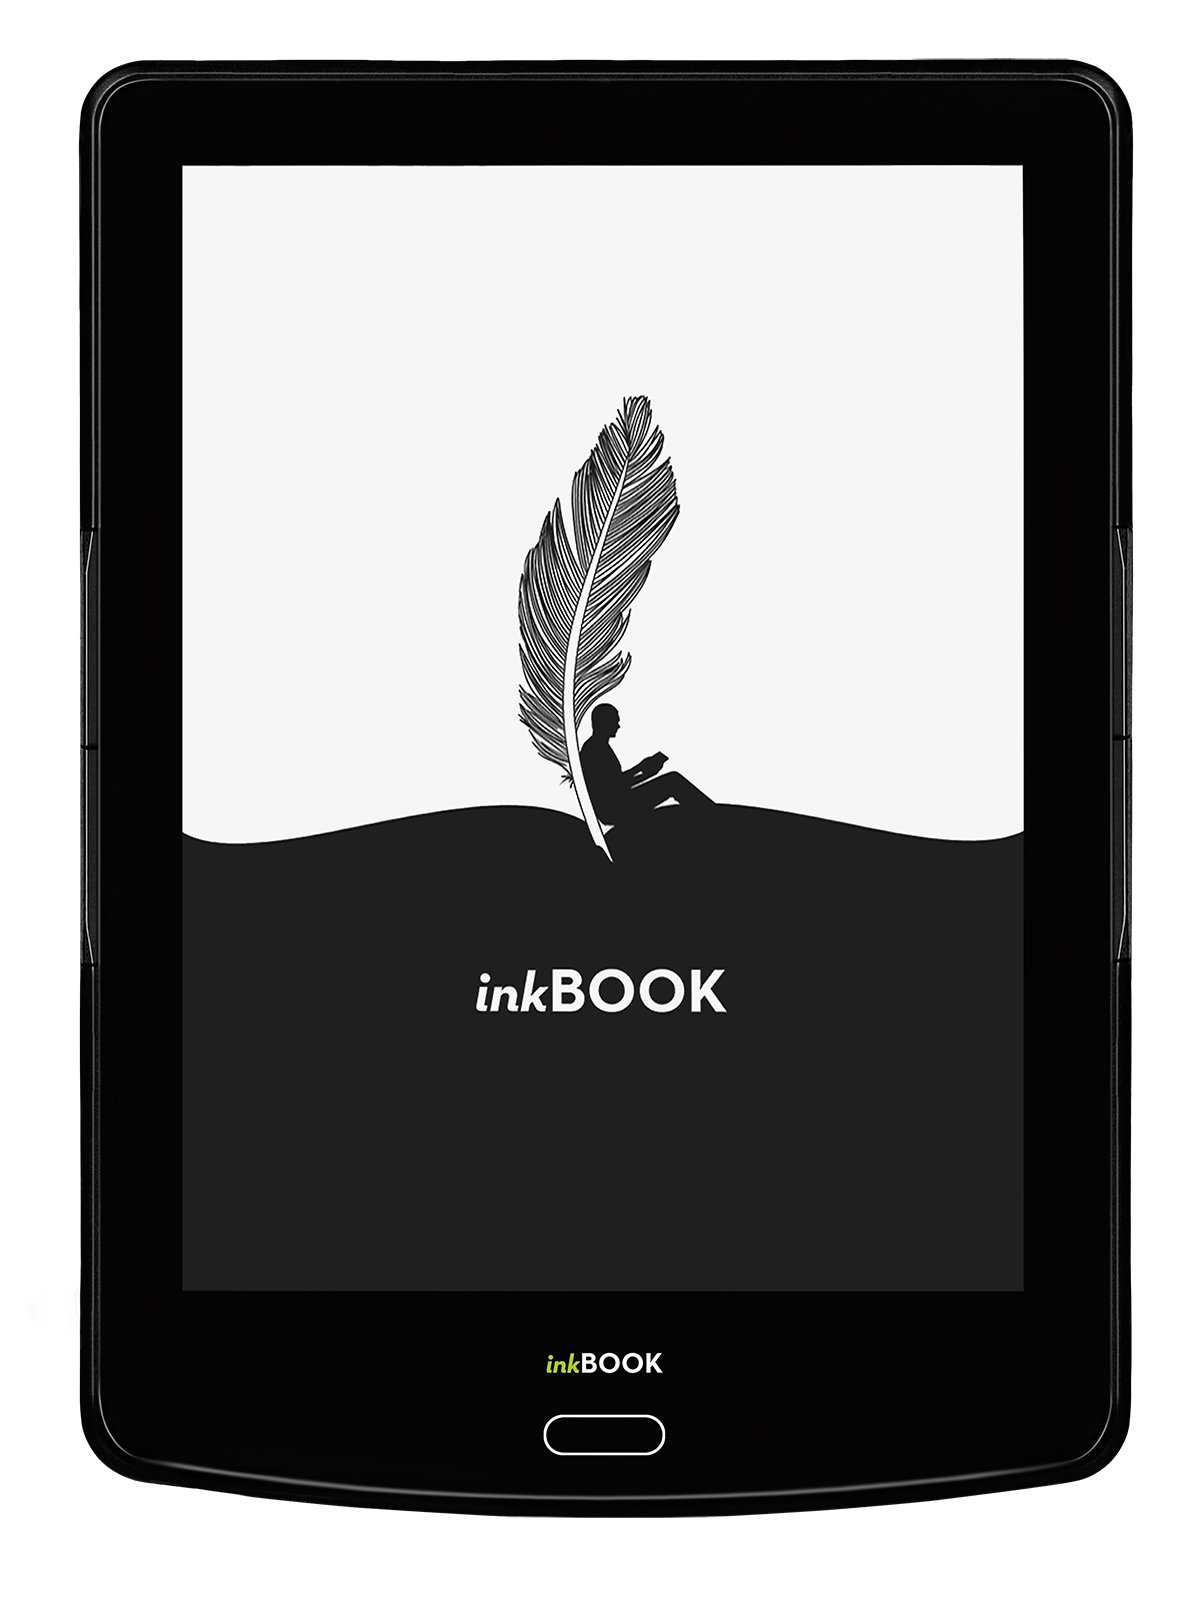 inkBOOK Prime - 6'' ebook reader with ePaper E Ink Carta Flat Glass Solution touchscreen with Rapid Refresh technology, Built-in Light (8 LED), Android, App Store, Wi-Fi, 8 G by inkBOOK (Image #1)